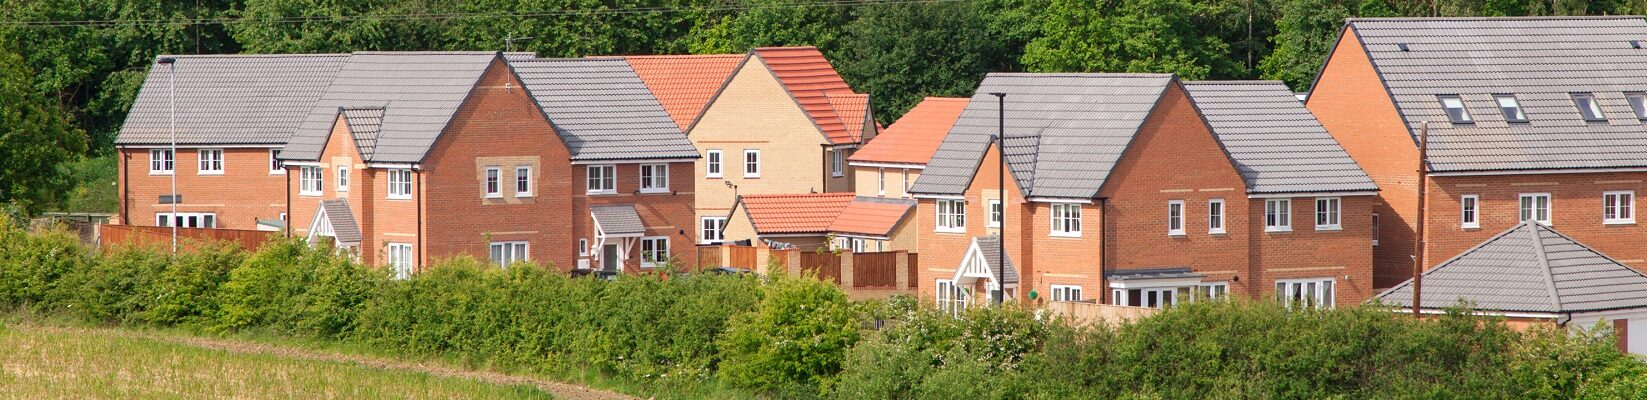 Conveyancing & Property Law Services in Heathfield